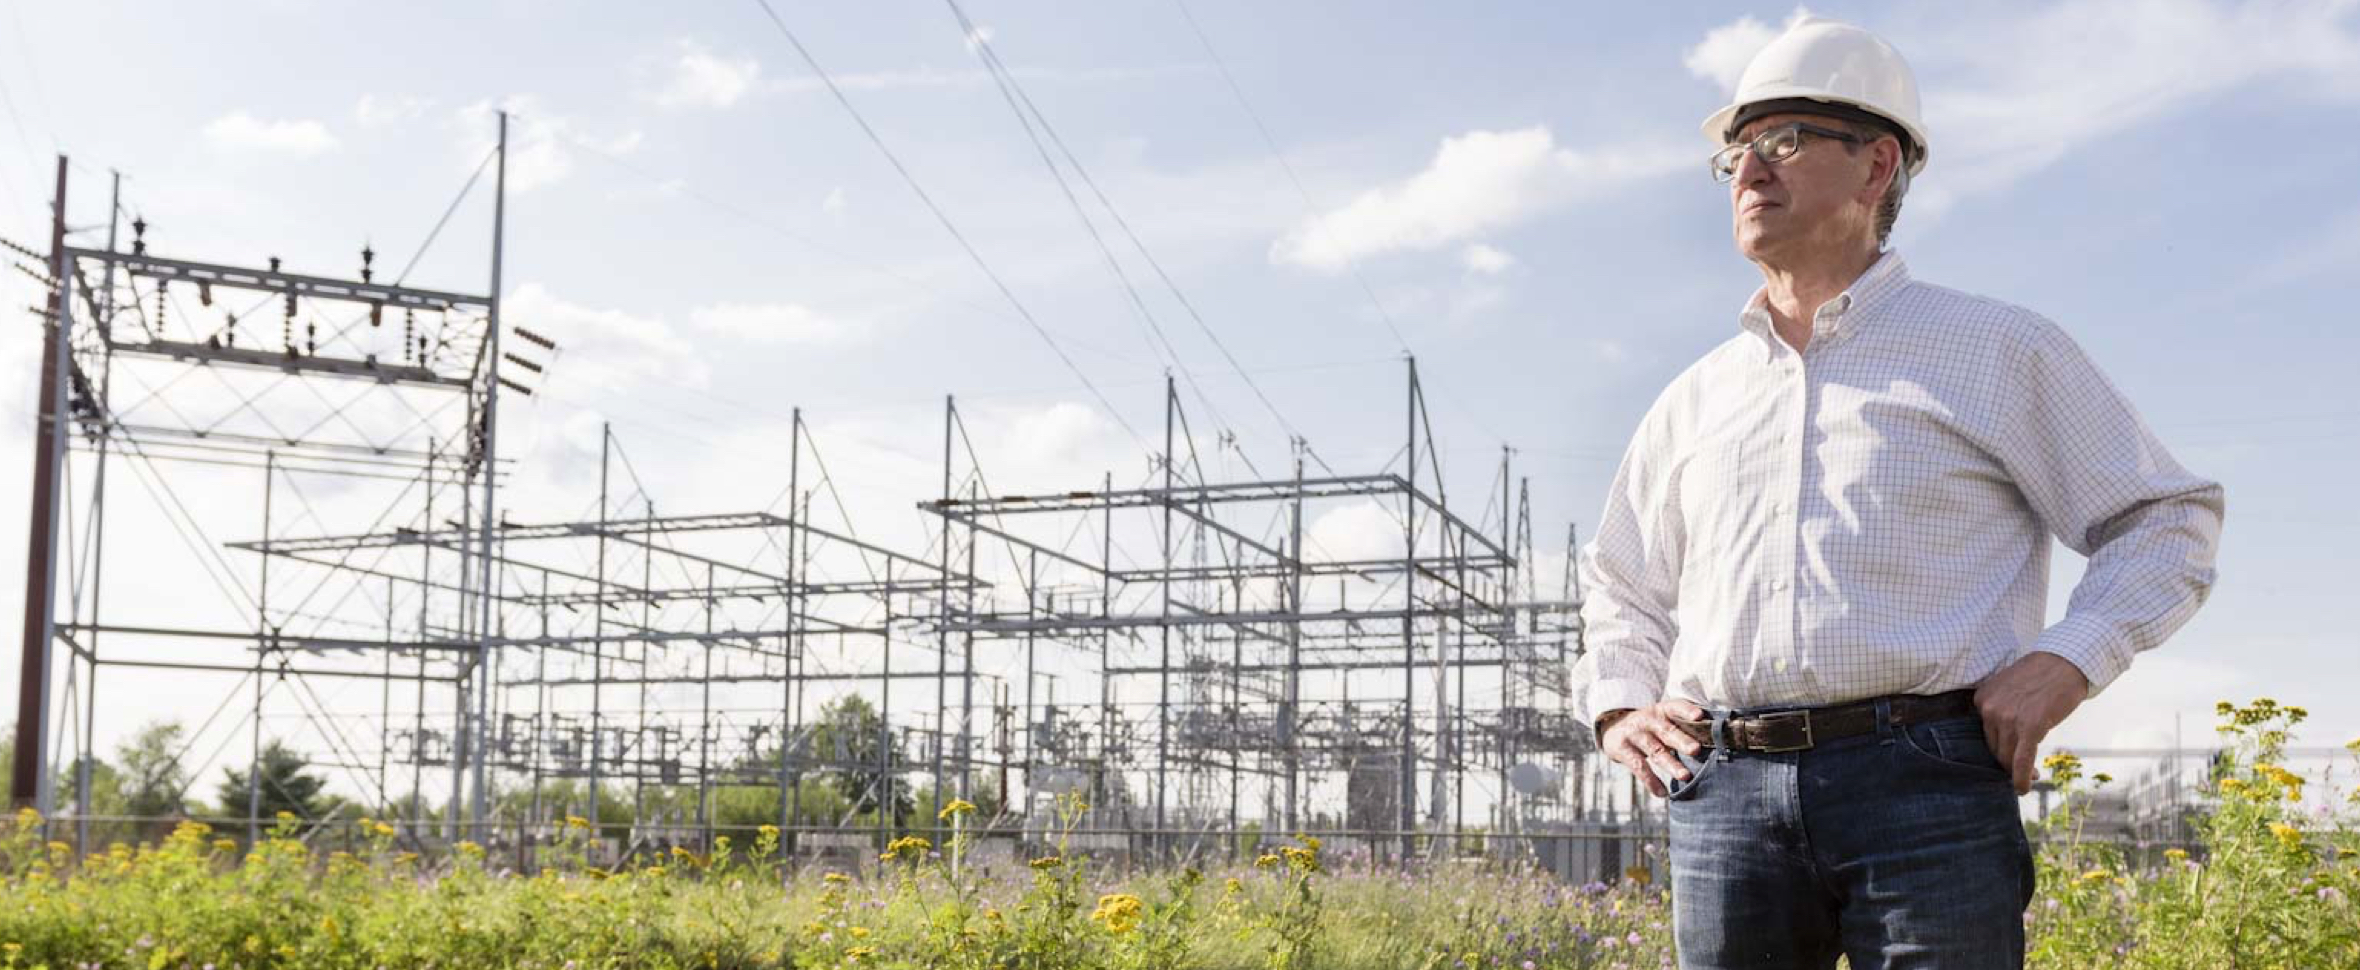 Vision - Engineer overseeing a power sub-station